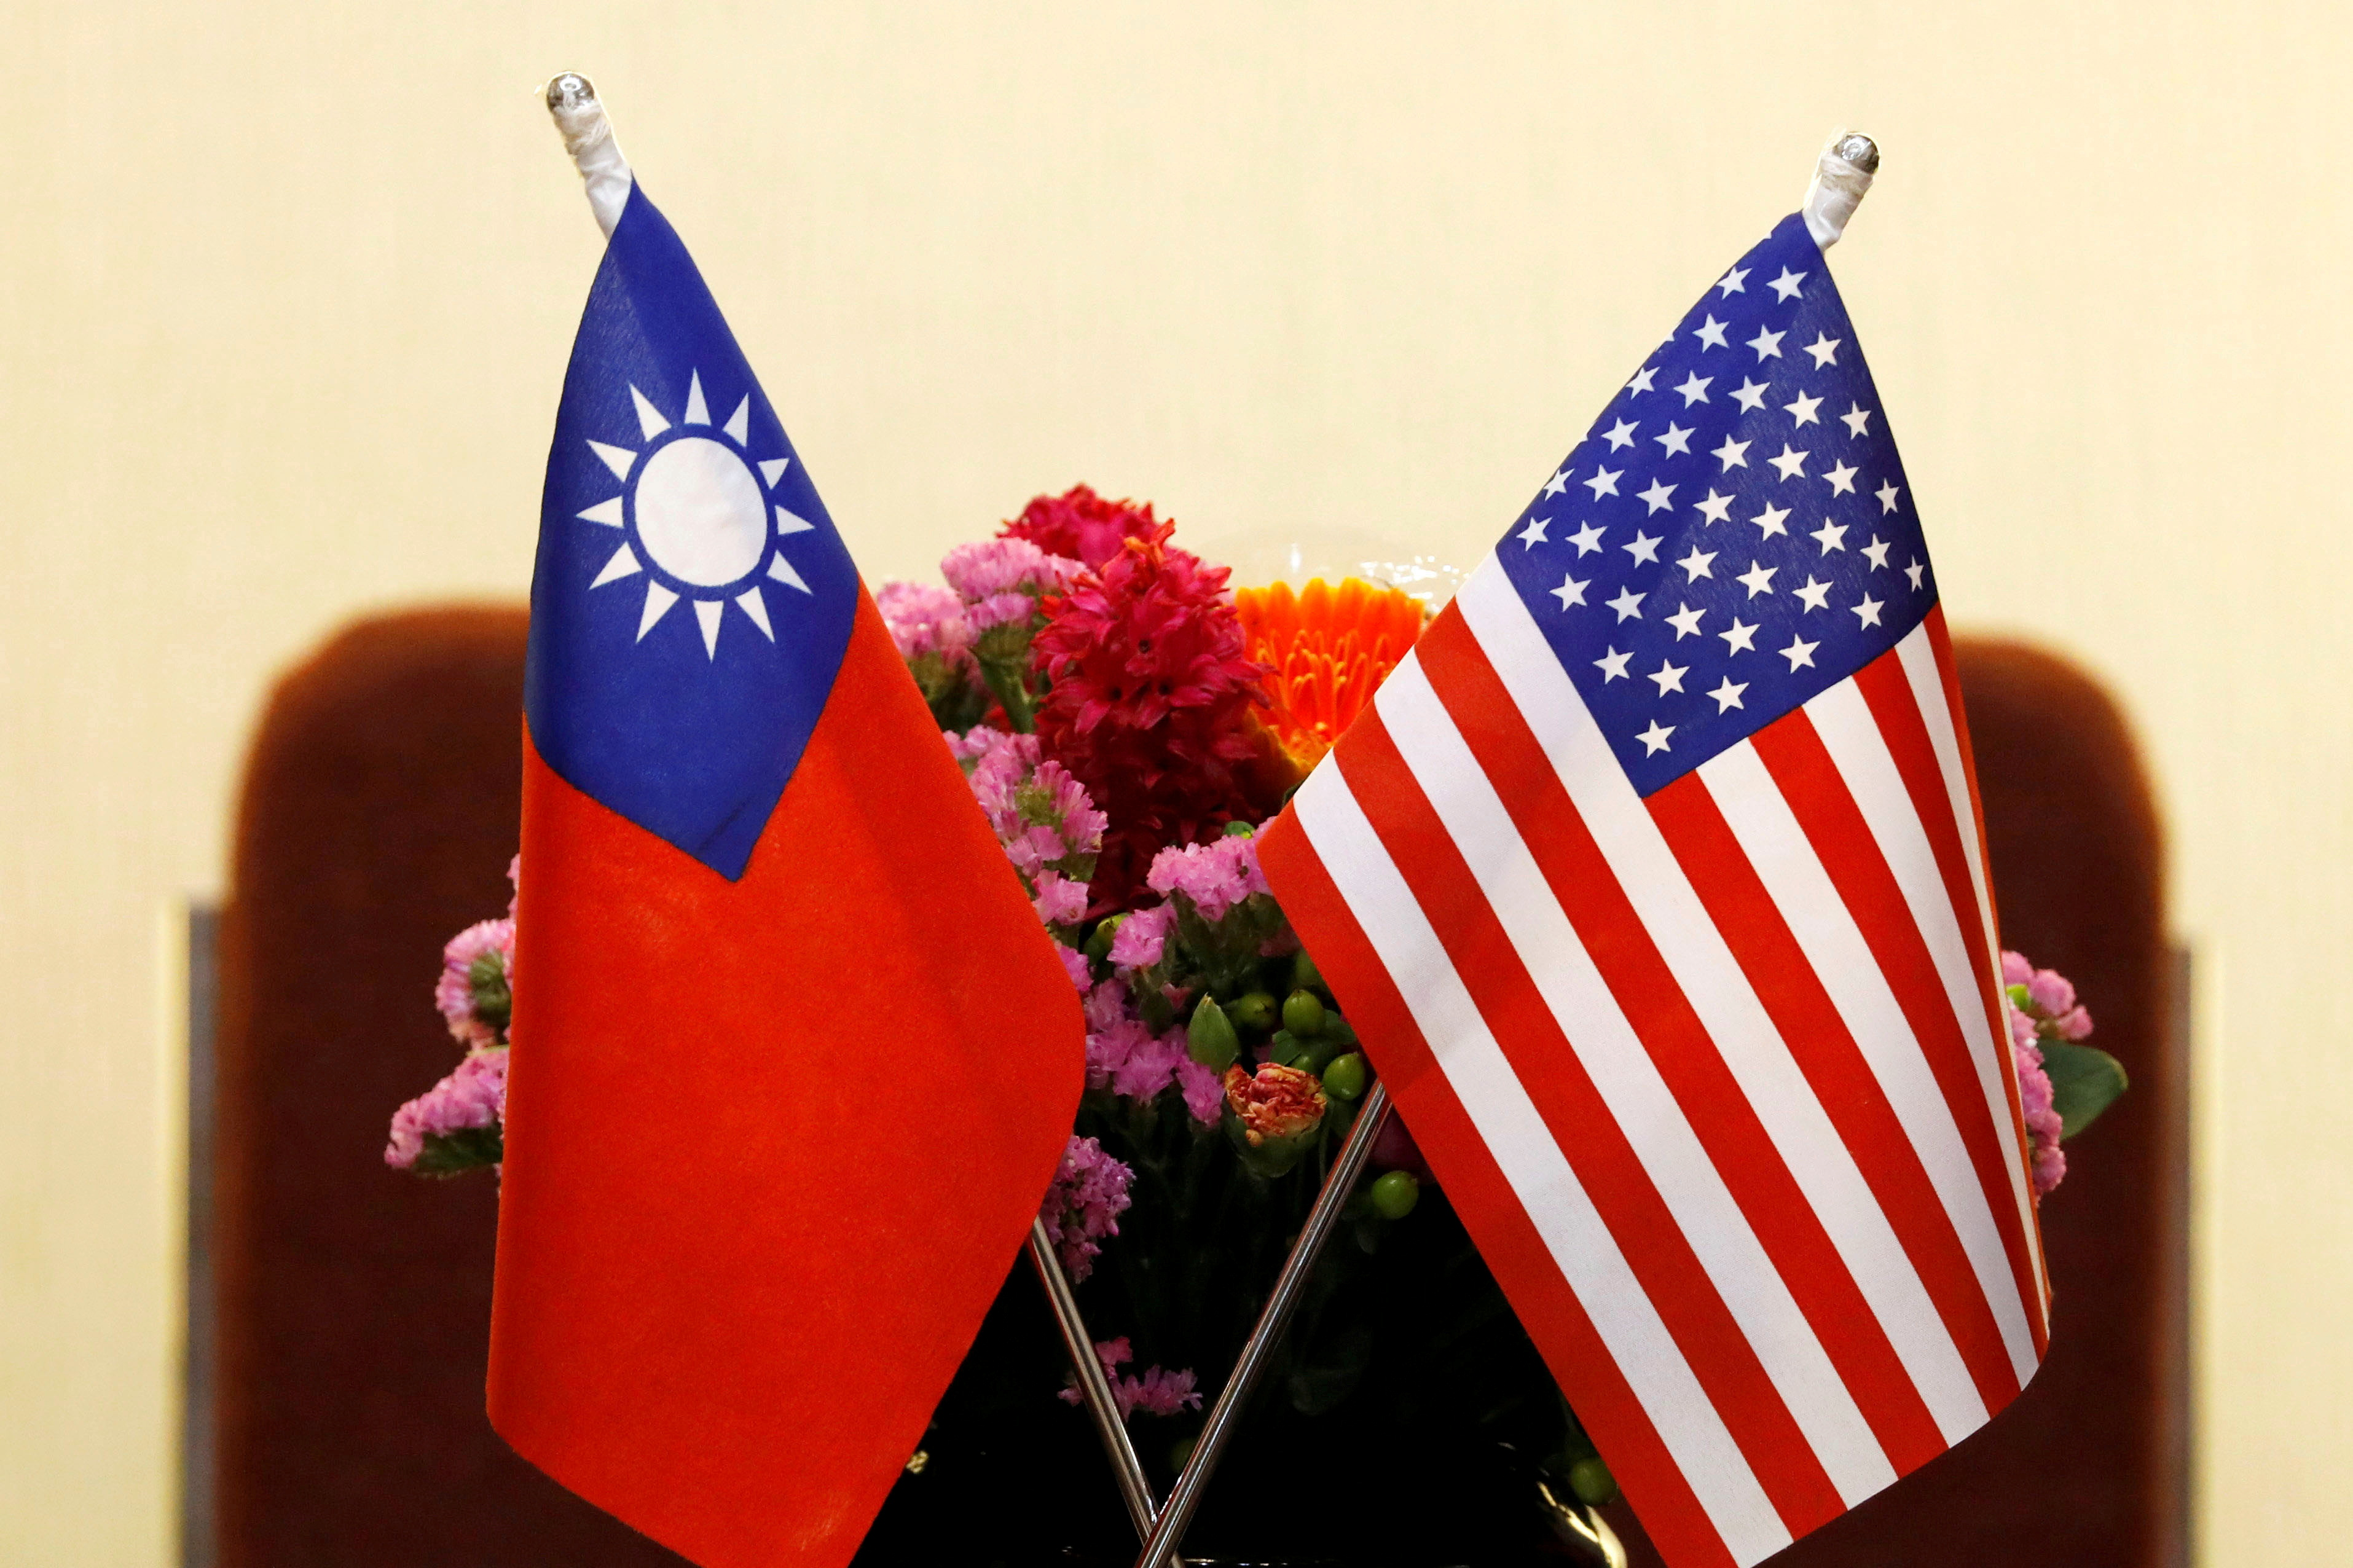 Flags of Taiwan and U.S. are placed for a meeting in Taipei, Taiwan March 27, 2018. REUTERS/Tyrone Siu